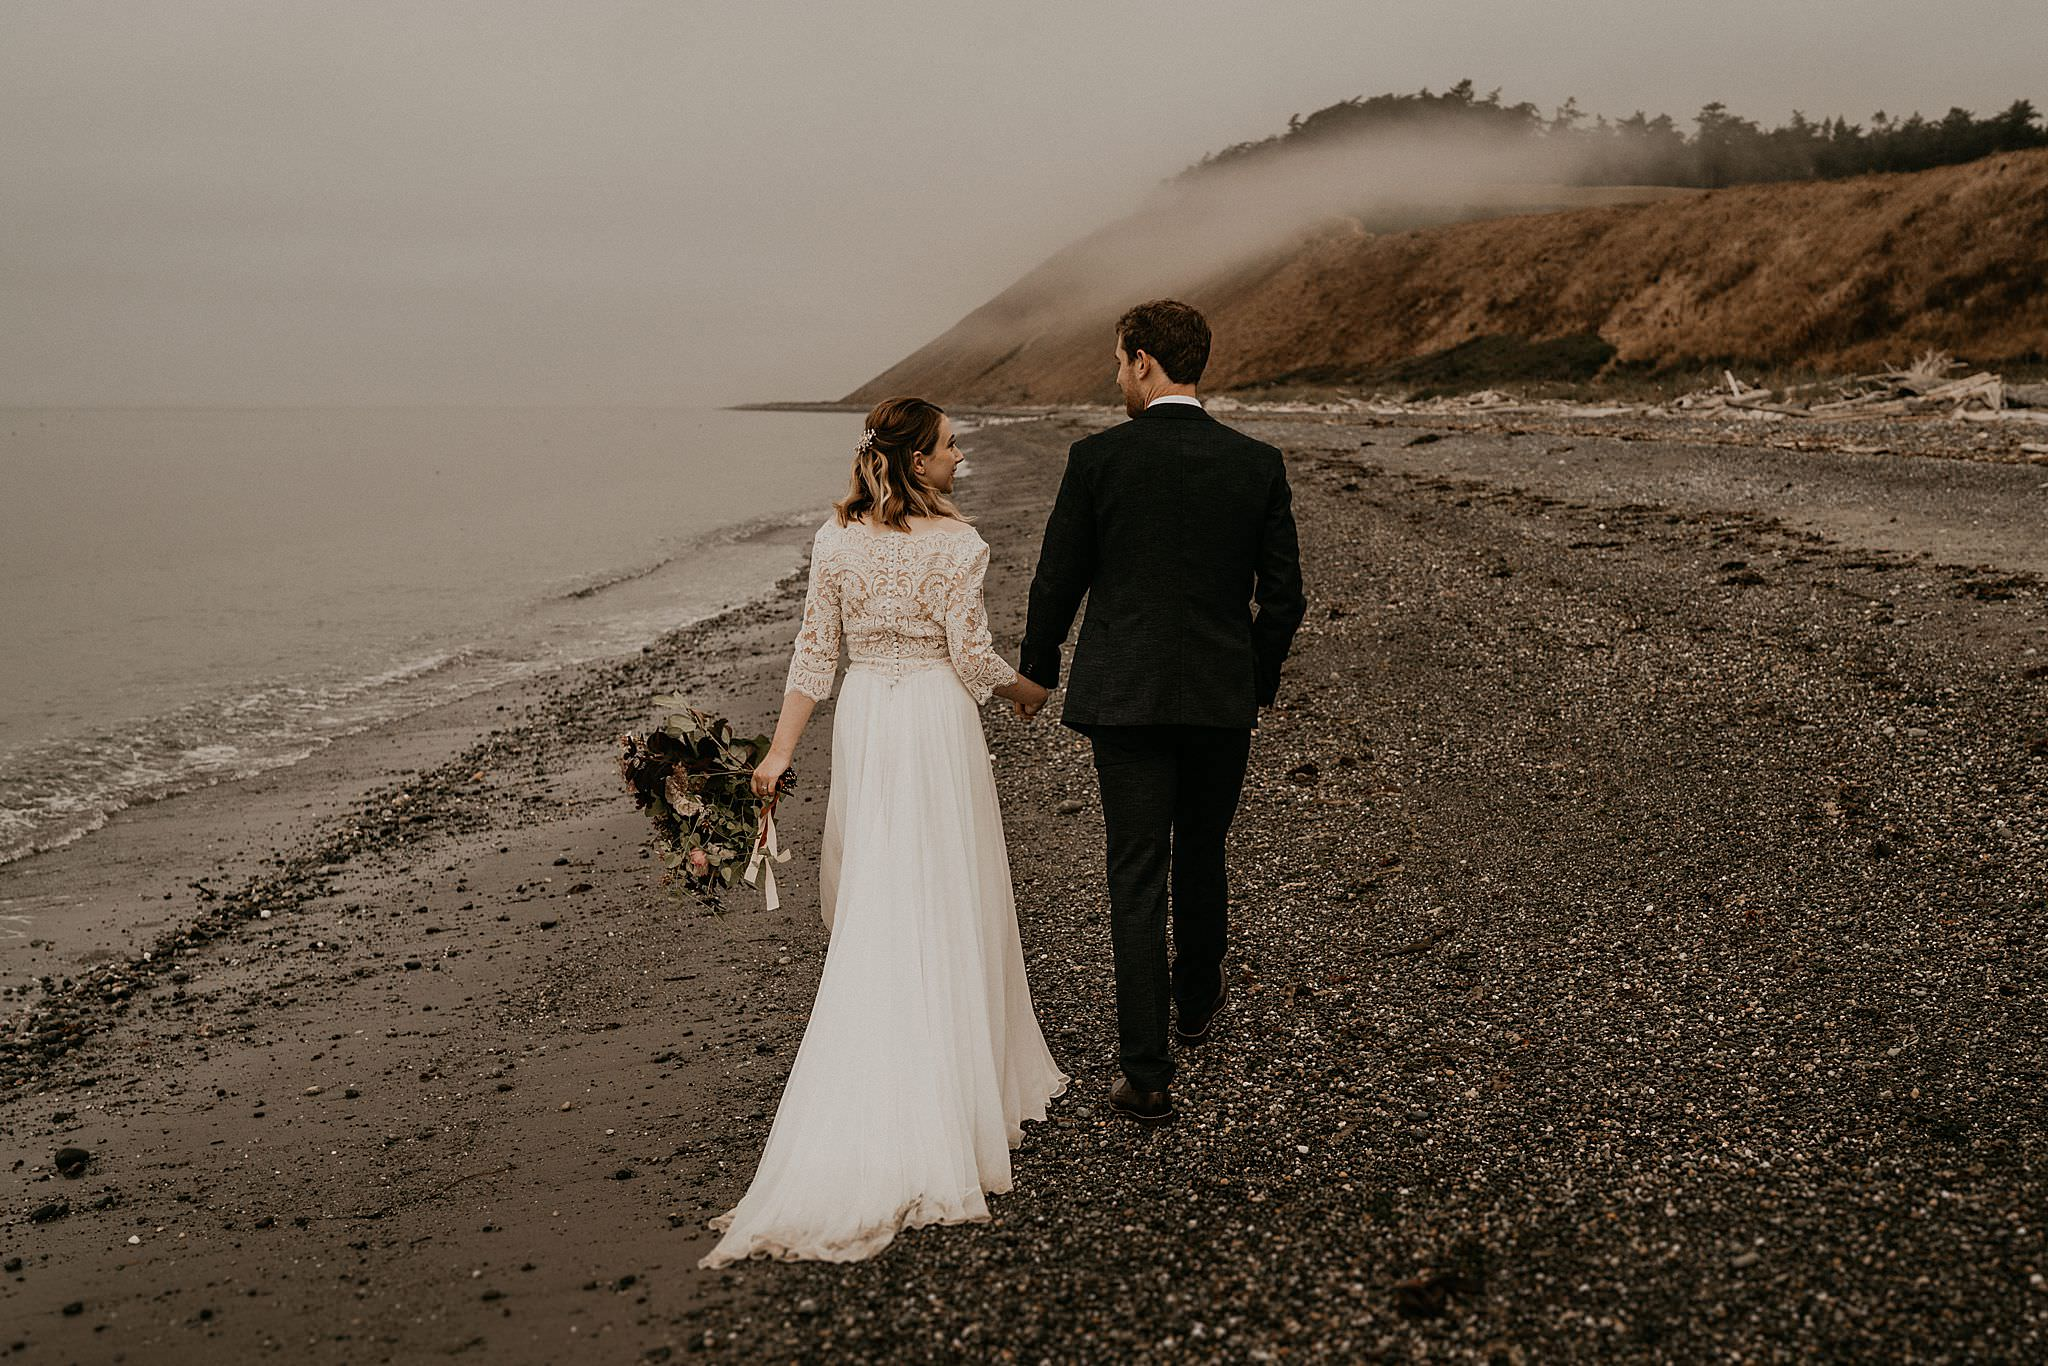 Boho and intimate wedding on Whidbey island outside of Seattle Washington on the beach